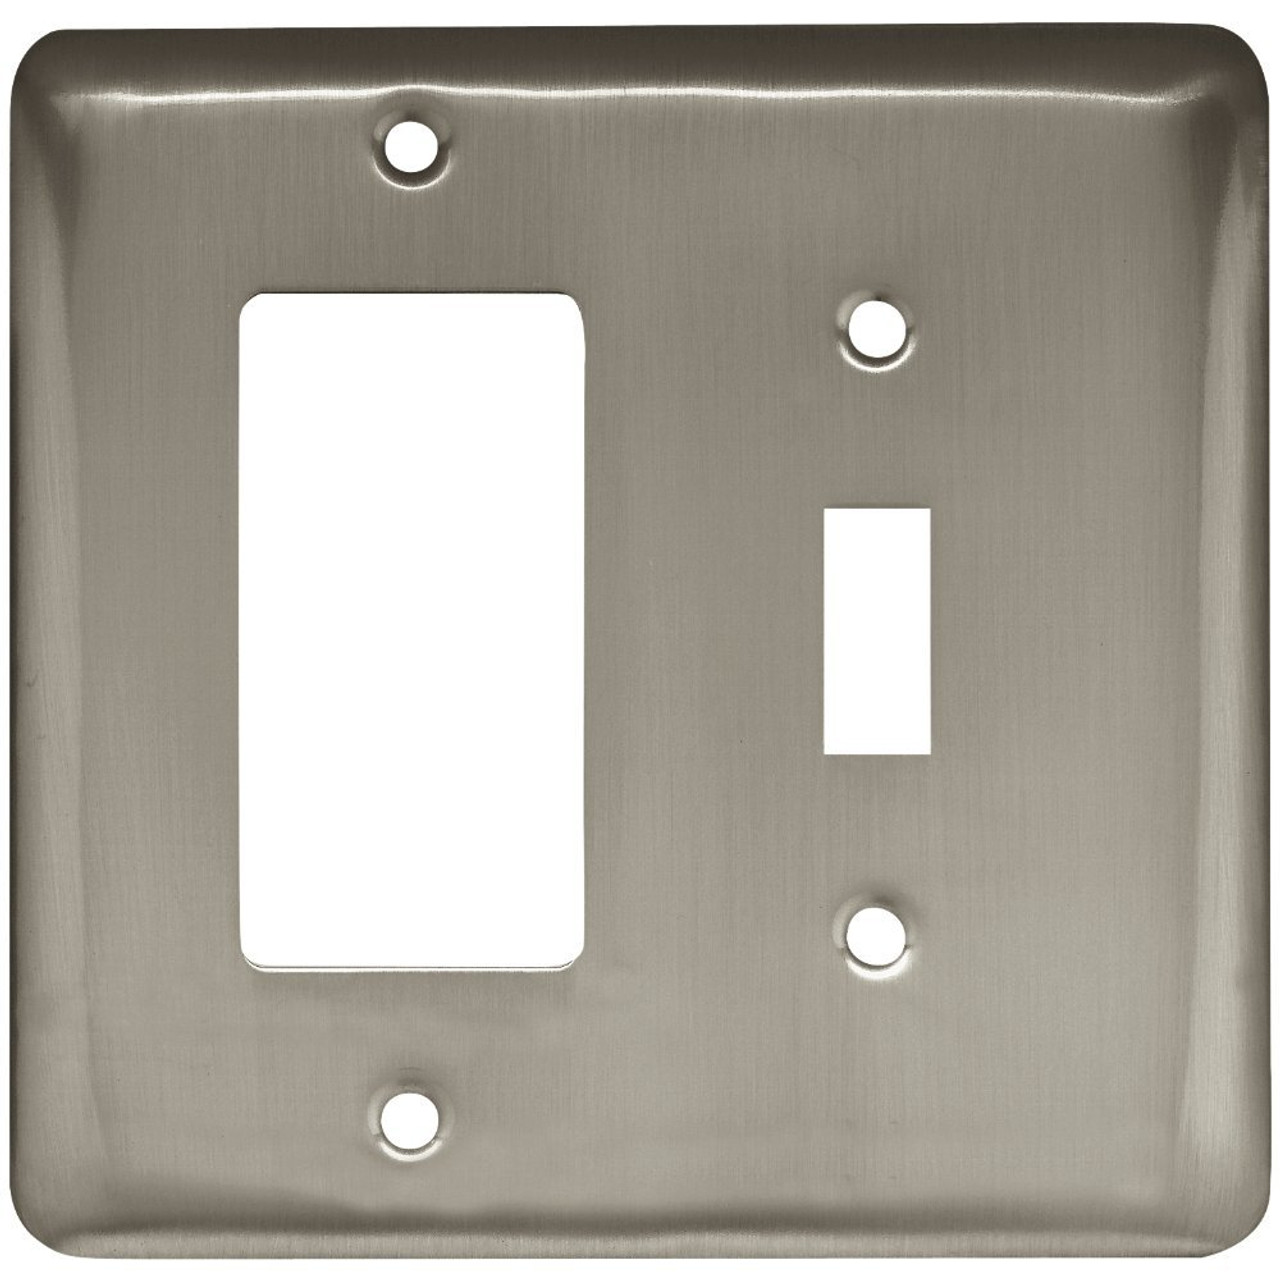 W10590-SN Stamped Satin Nickel Switch / GFCI Cover Plate